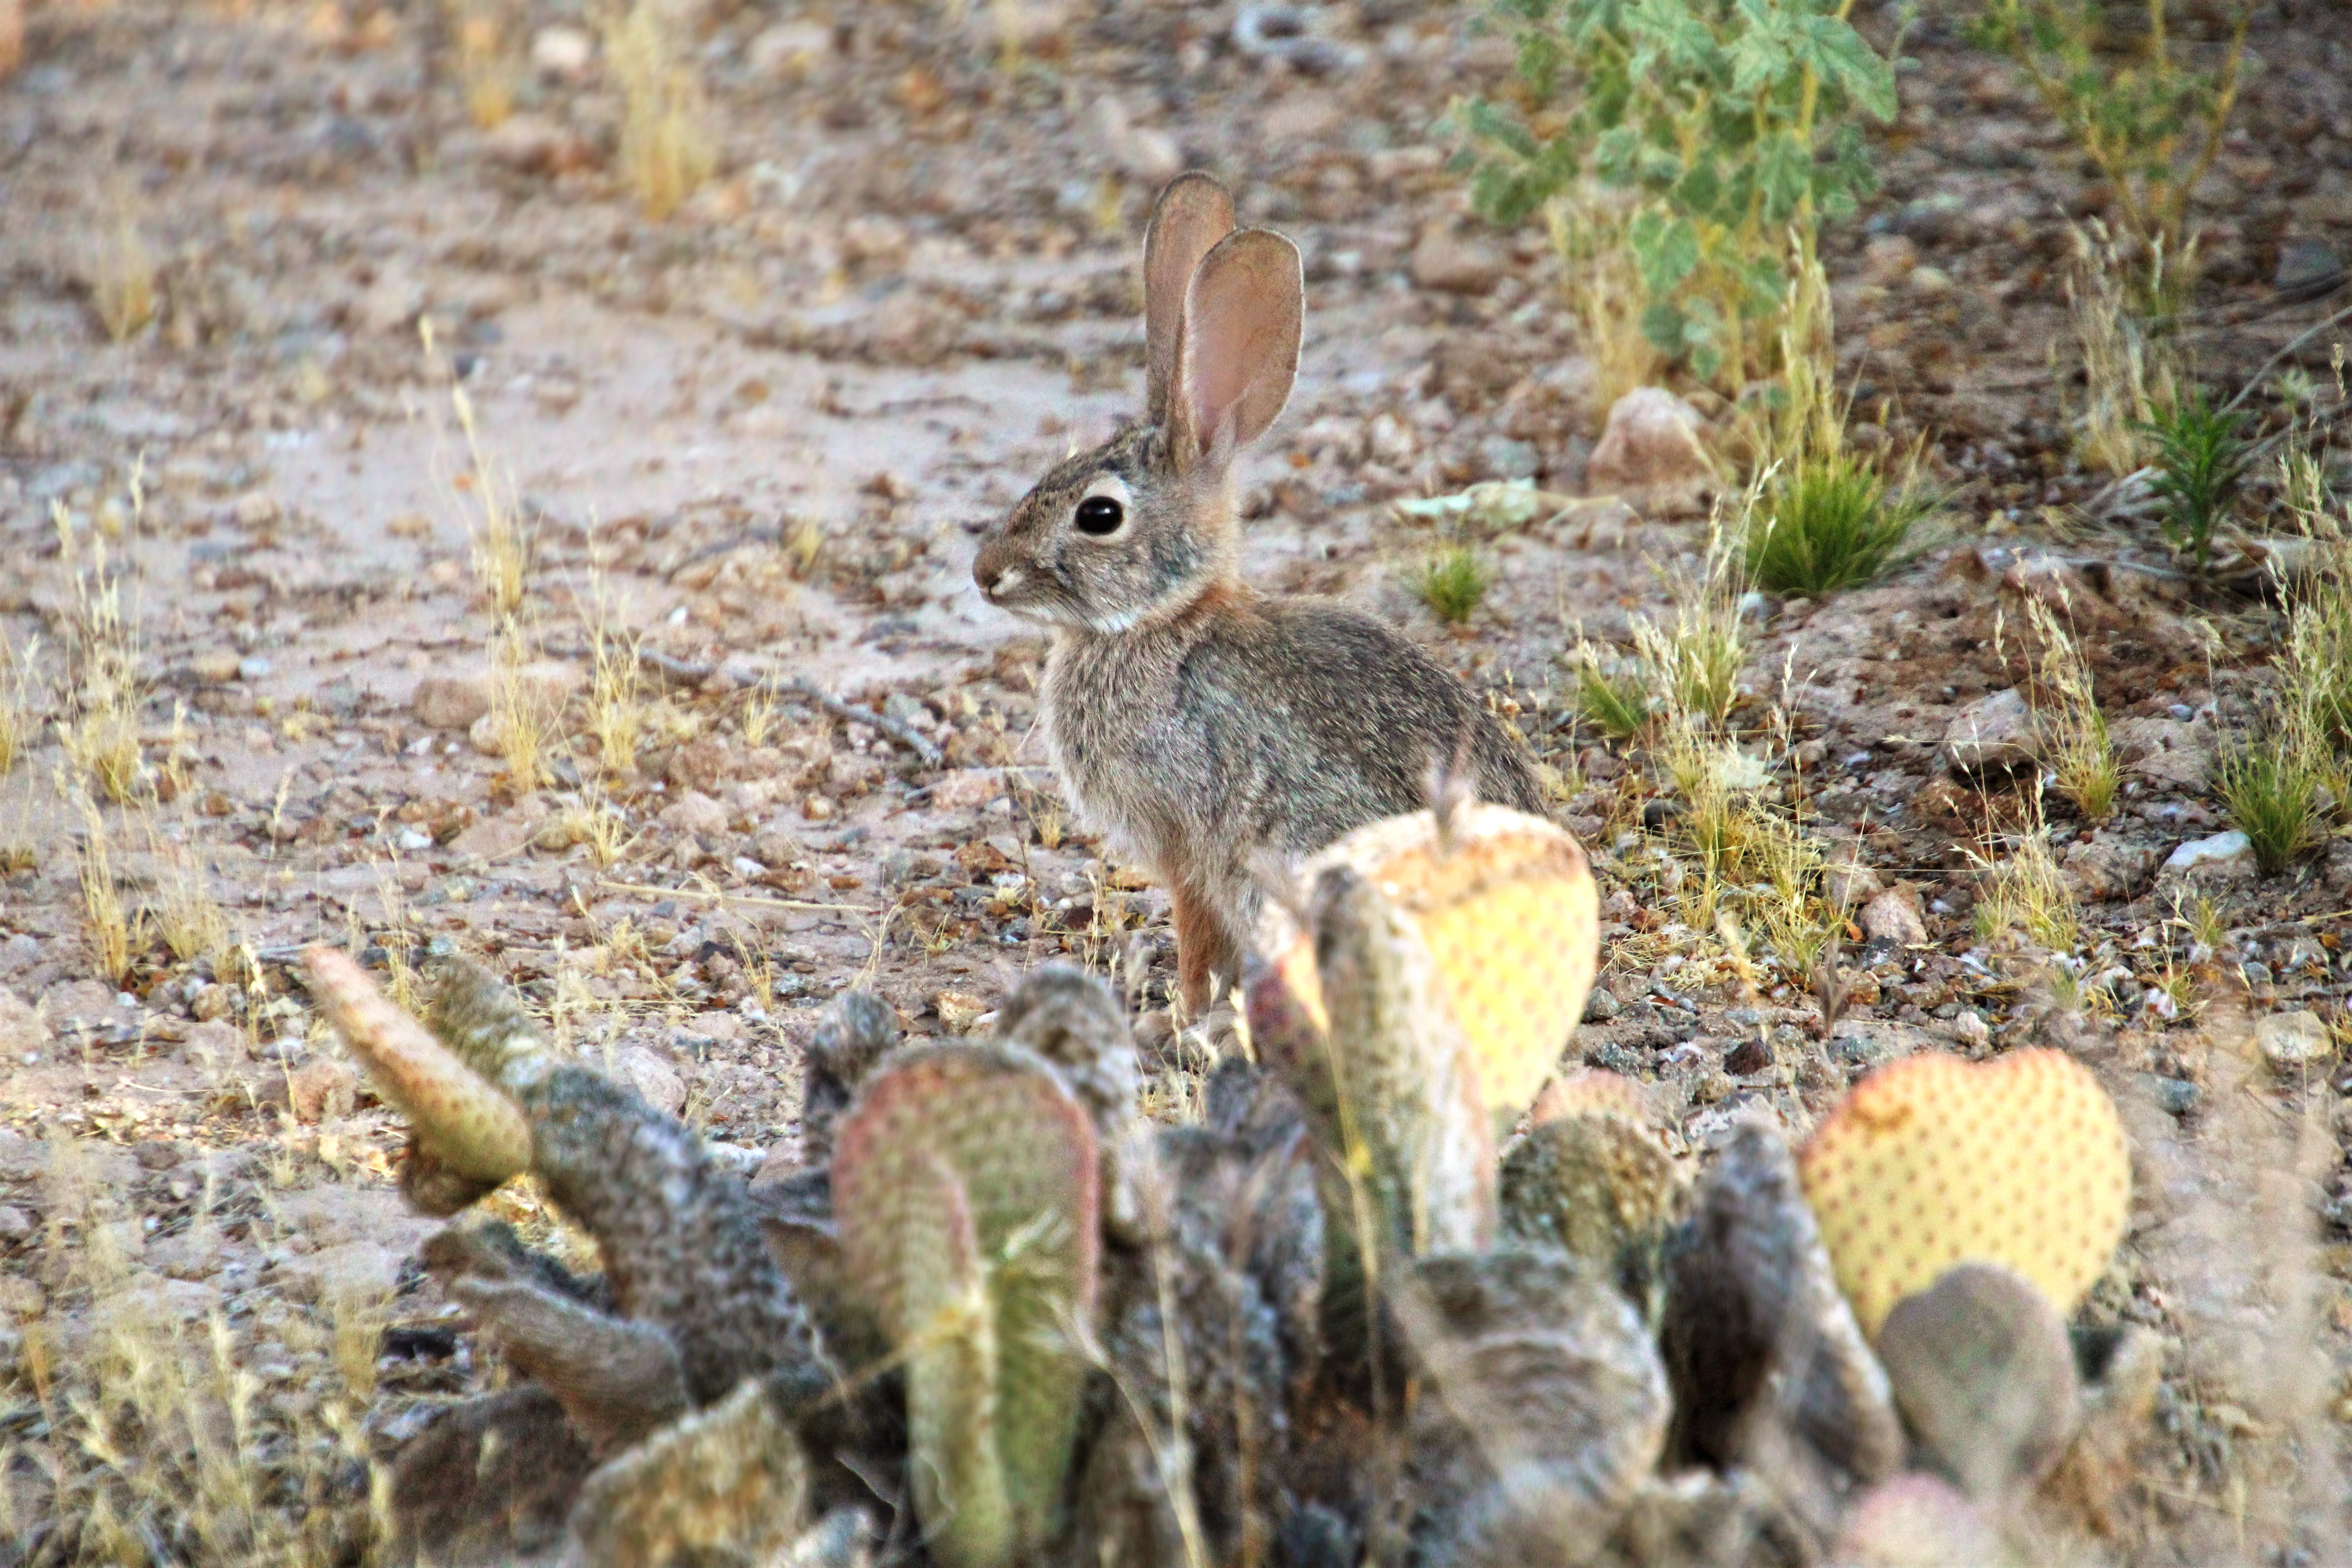 140574 download wallpaper Animals, Hare, Rabbit, Animal, Cactuses screensavers and pictures for free